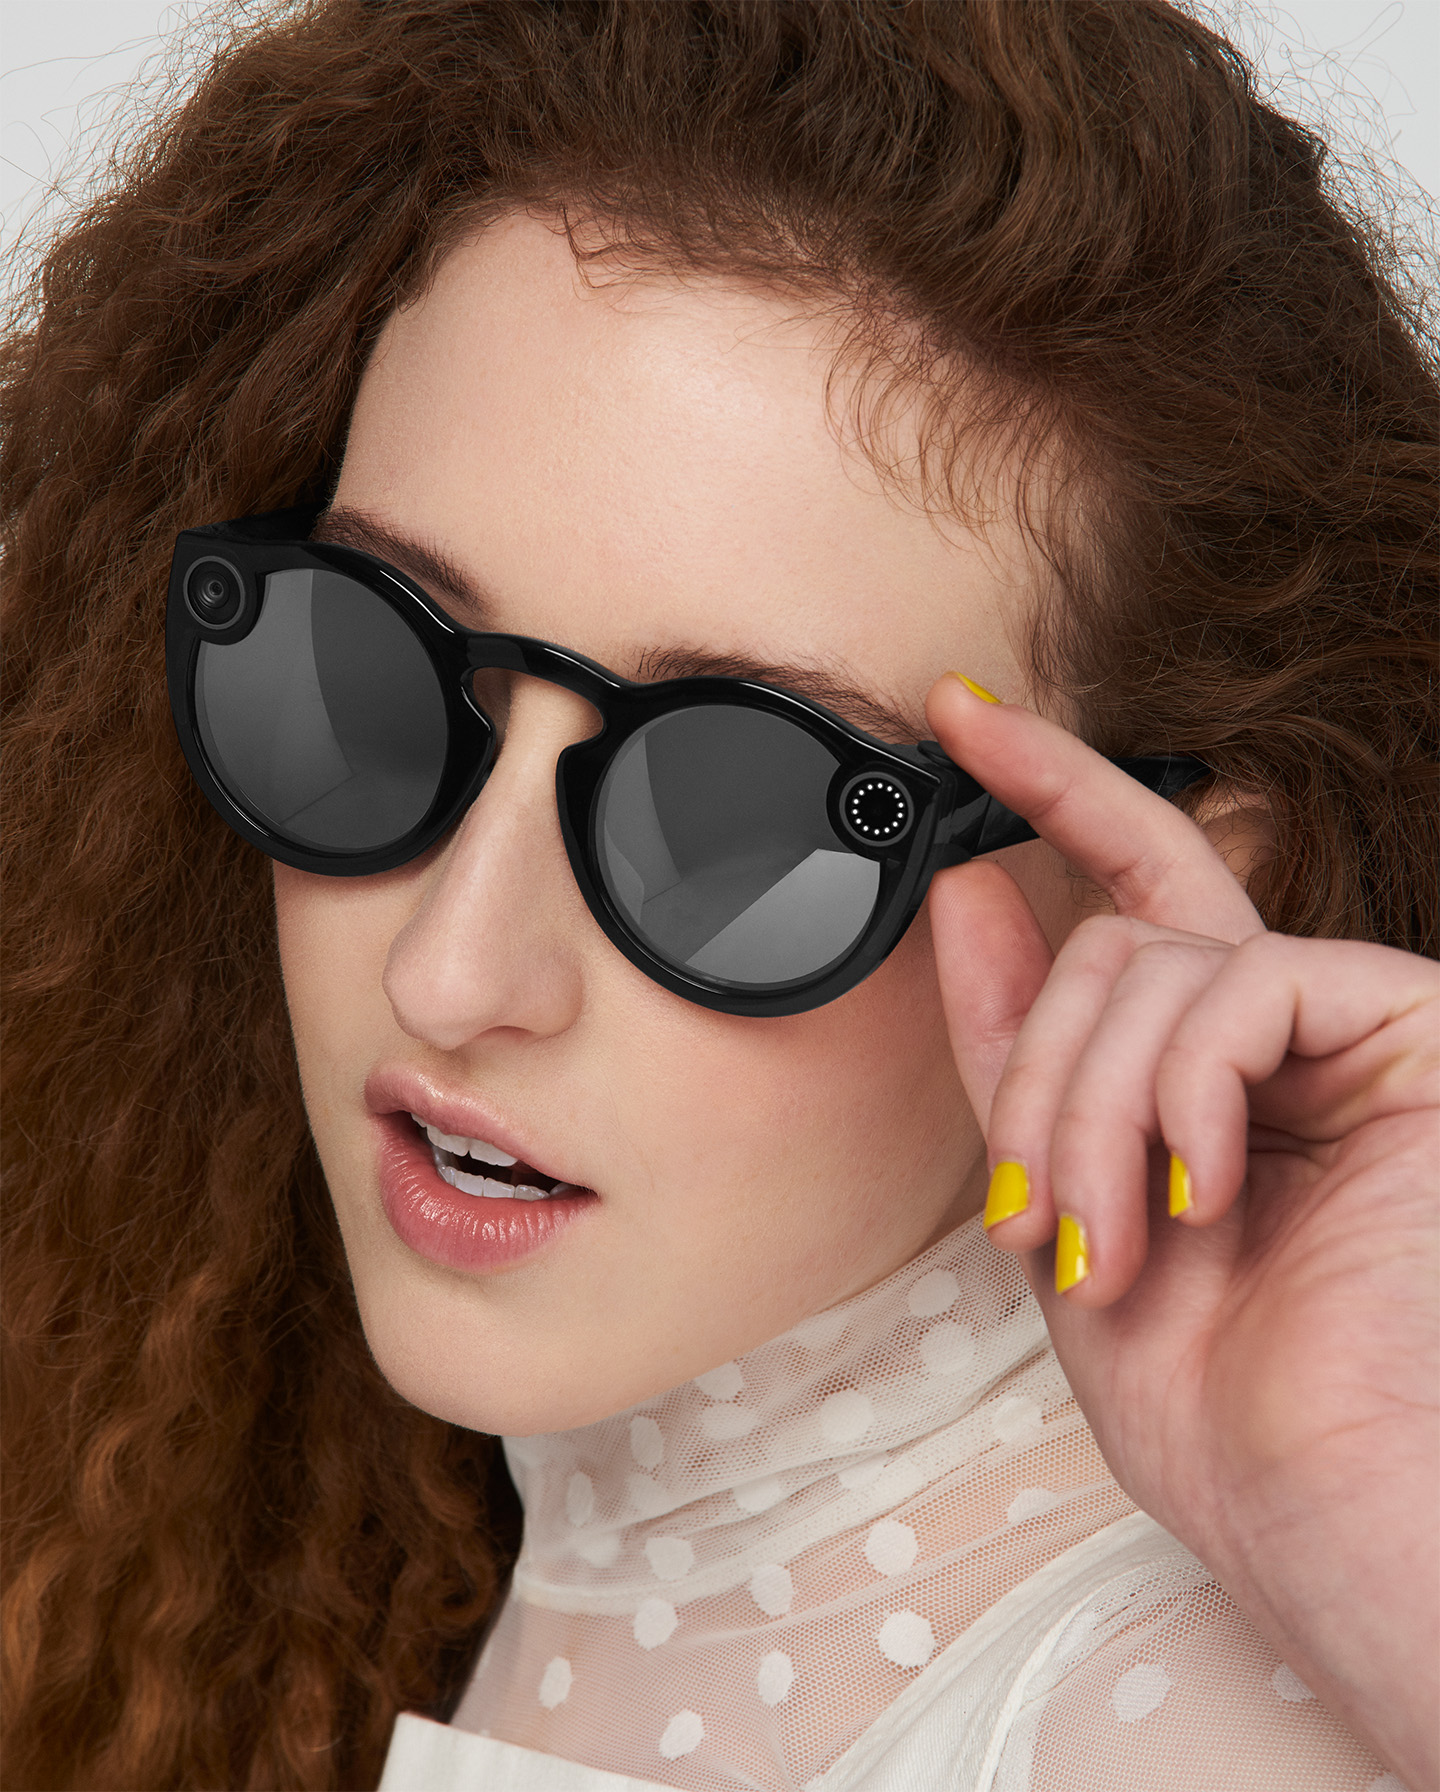 6c97268c52a8 Snapchat launches water-resistant Spectacles V2 with photo capture  Digital  Photography Review